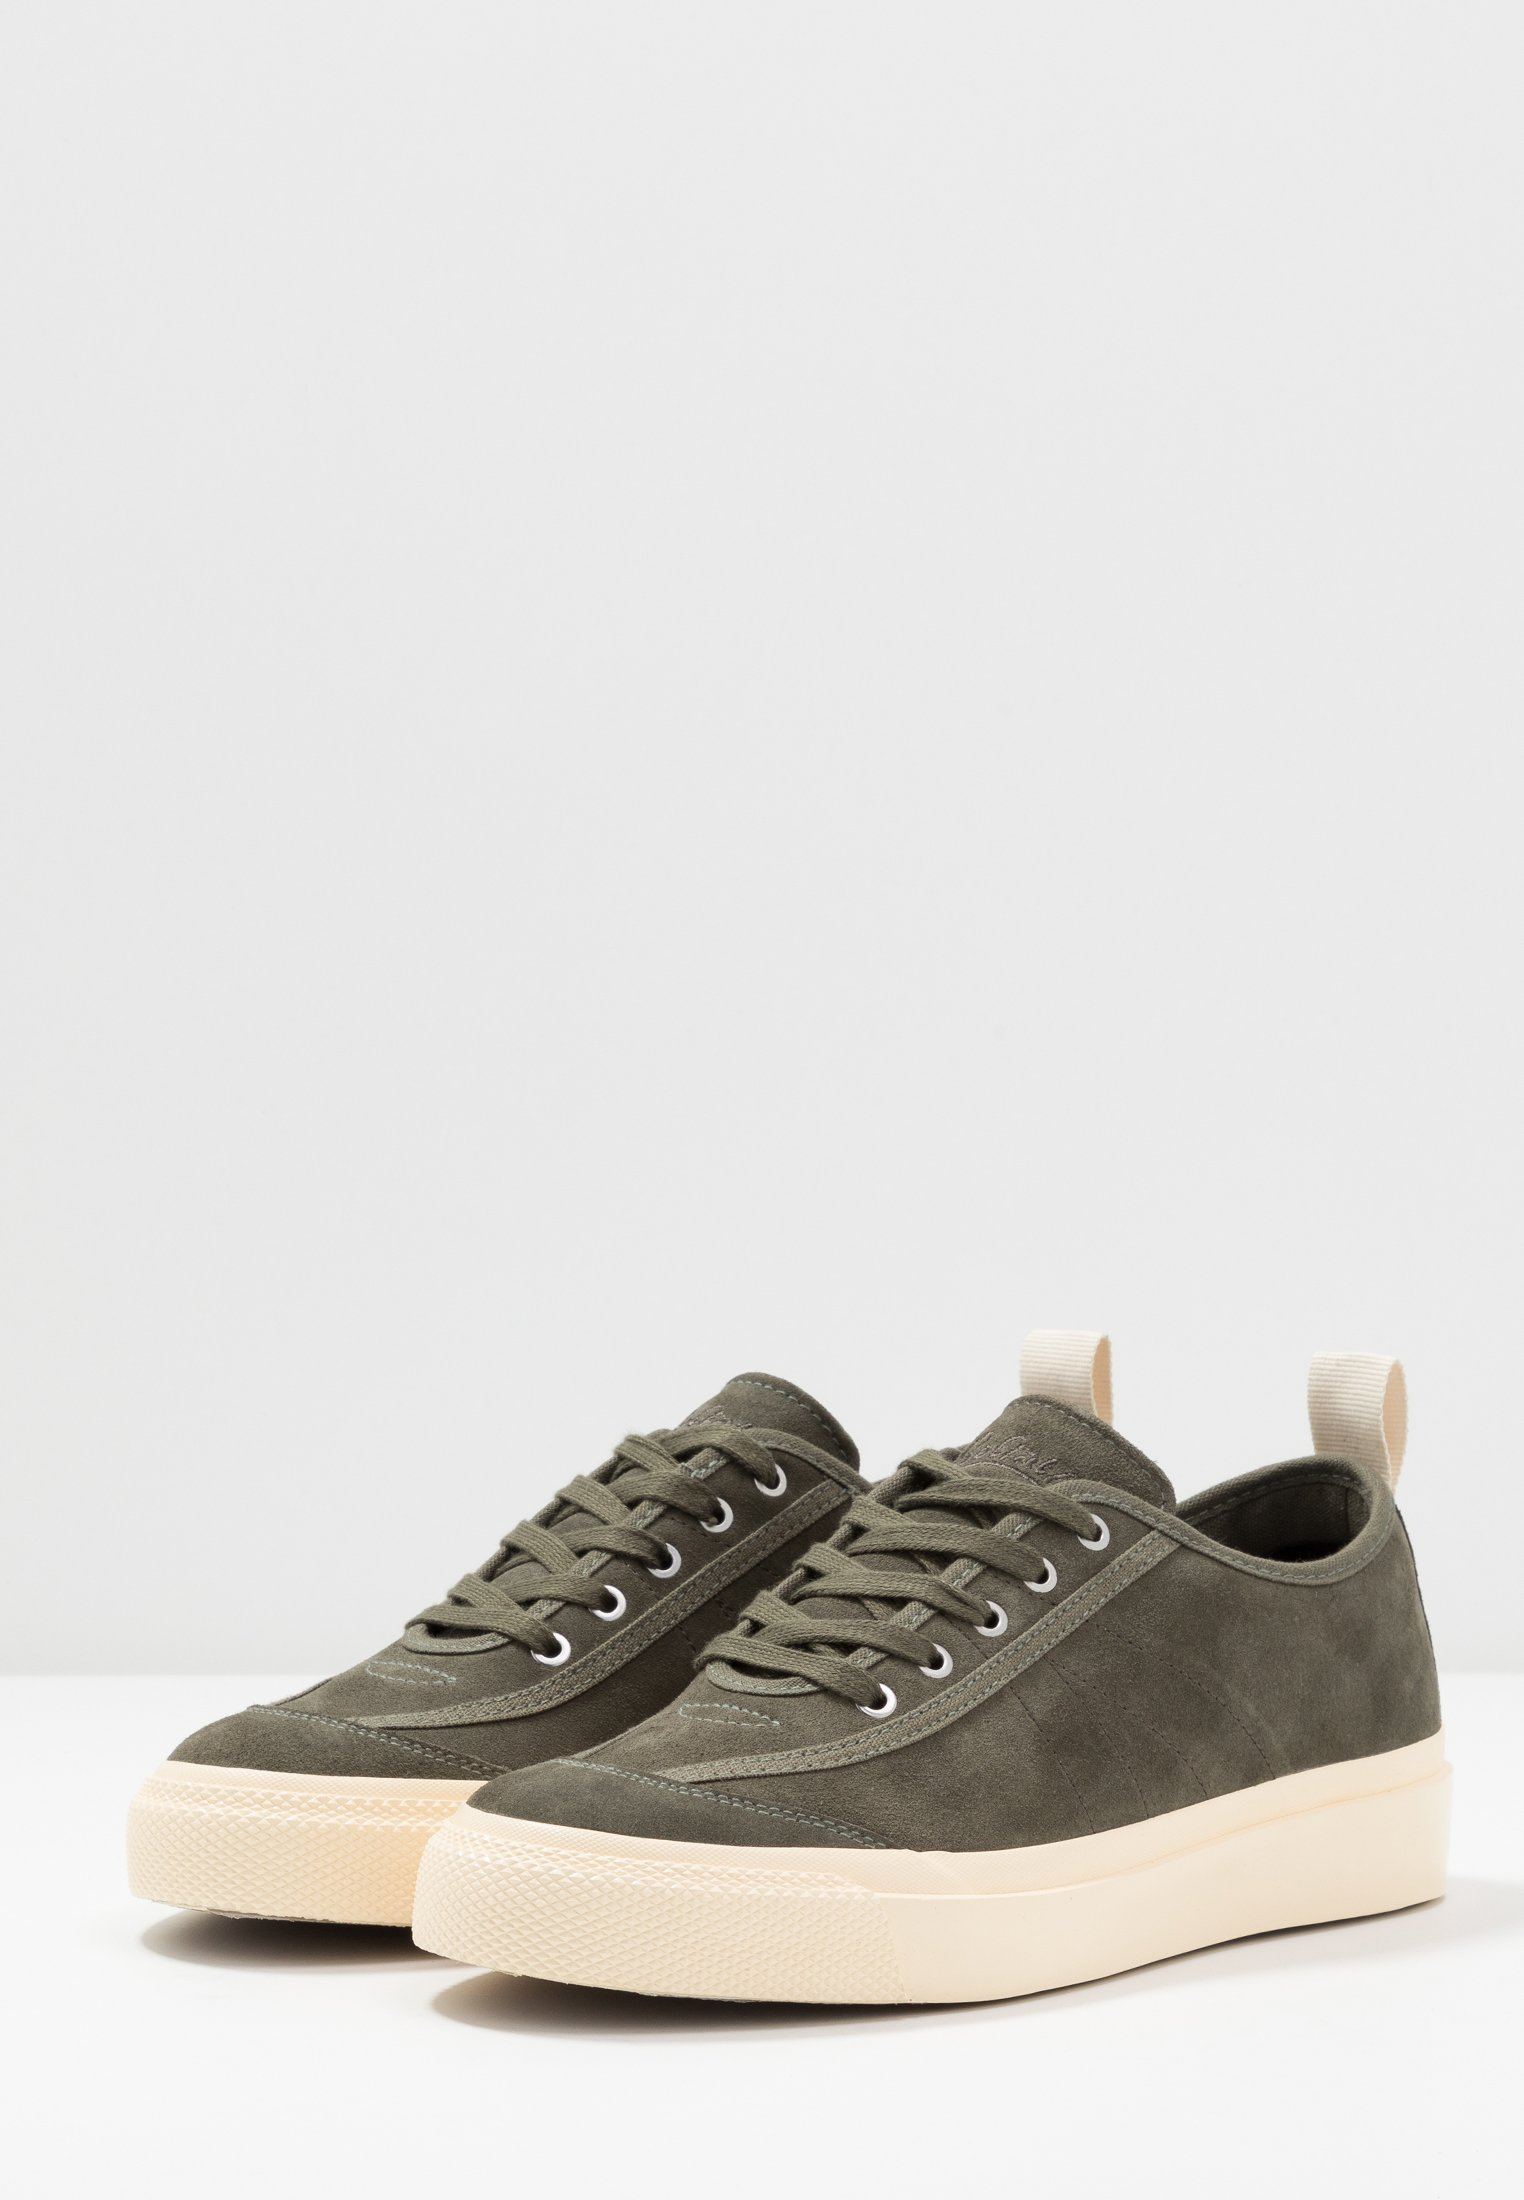 OneSneakers Goliath Goliath OneSneakers Number Number Number OneSneakers Basse Basse Olive Goliath Basse Olive FKJ1lc3T